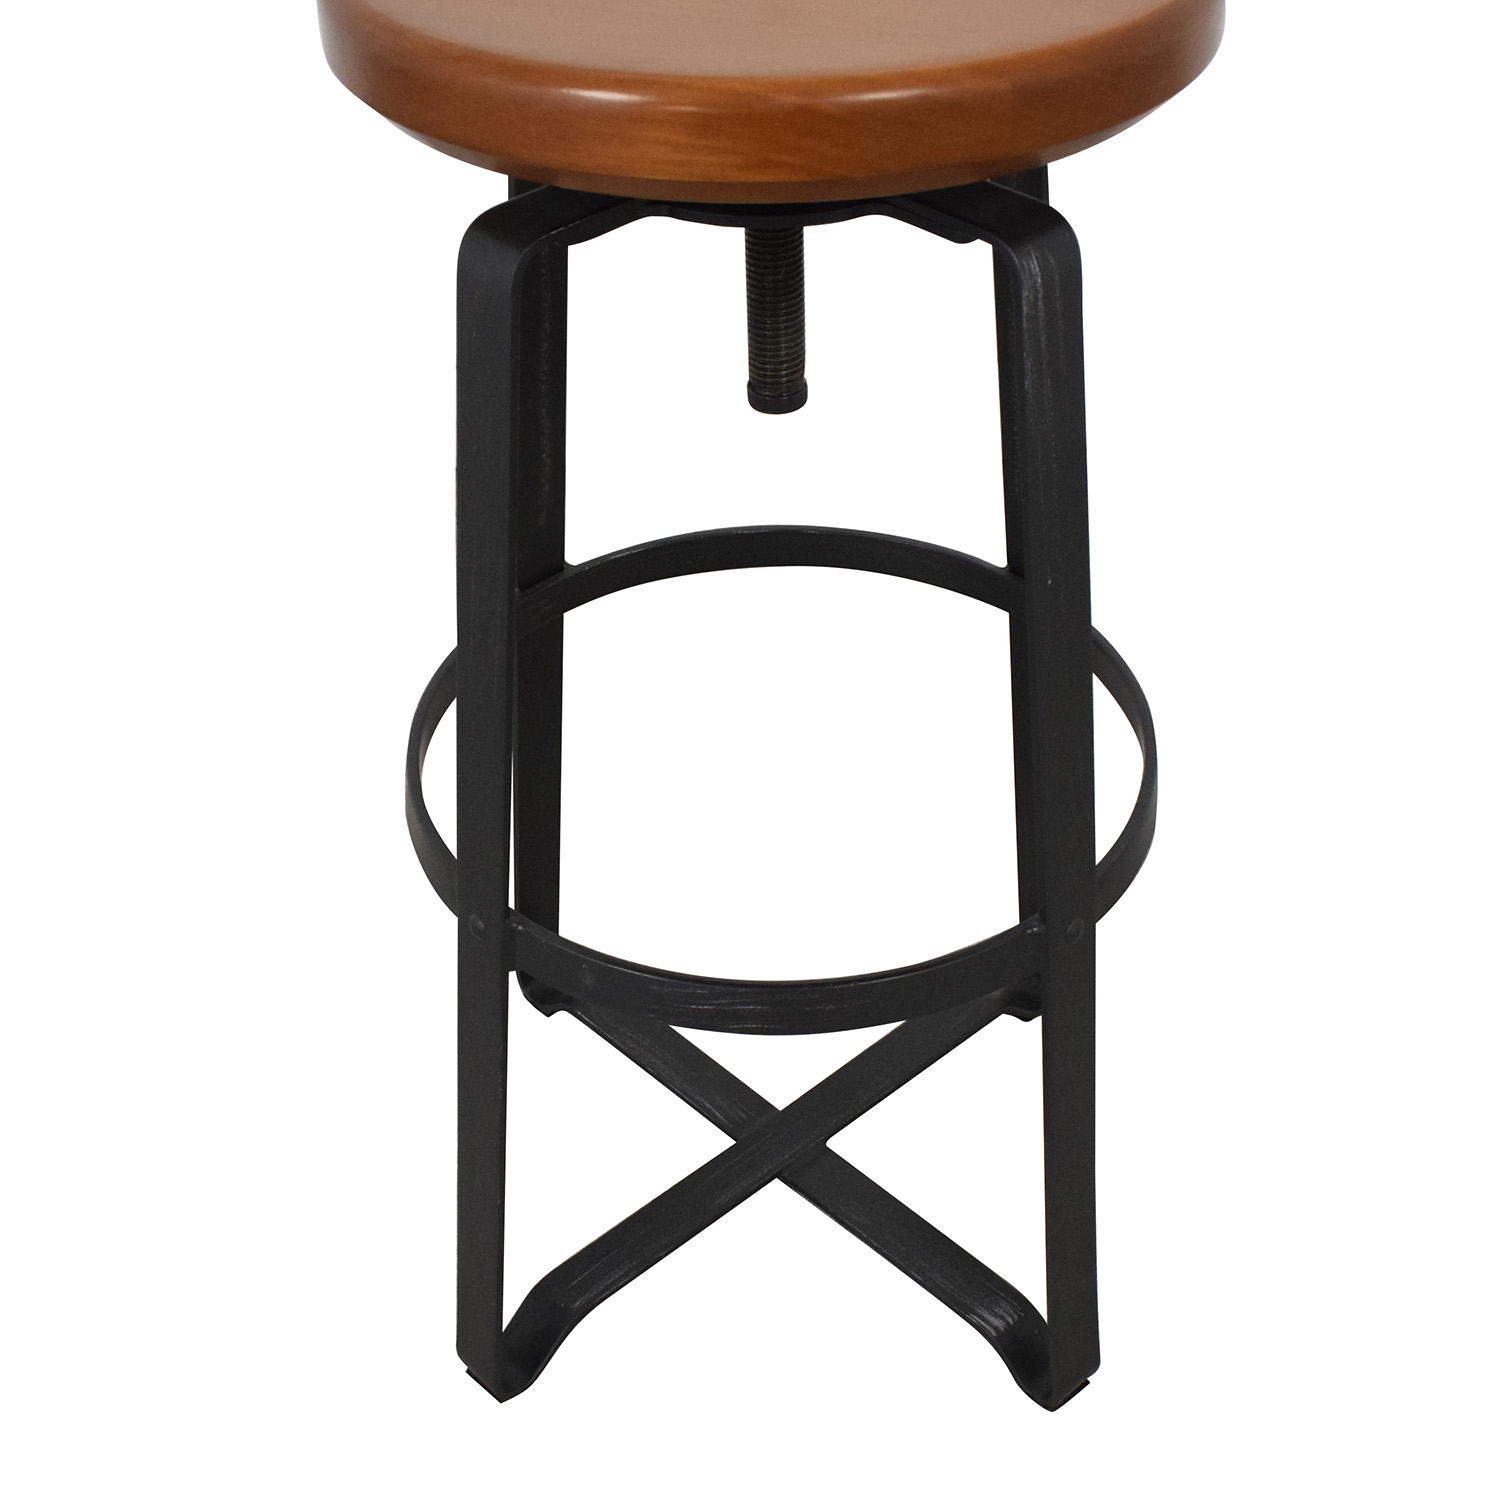 West Elm West Elm Adjustable Industrial Stool Stools